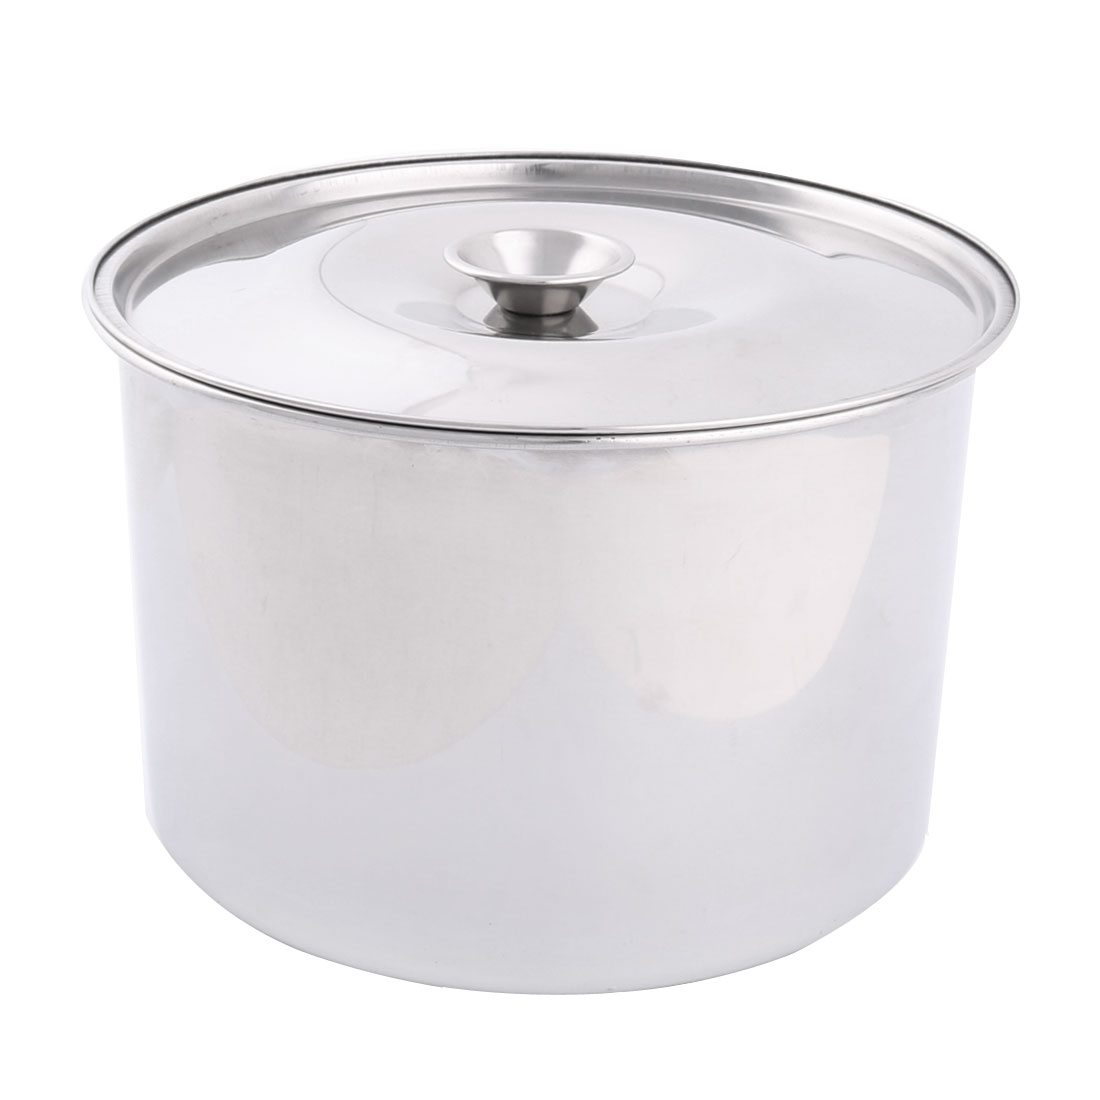 Kitchen Stainless Steel Food Soup Salad Egg Mixing Bowl Container 20cm Diameter